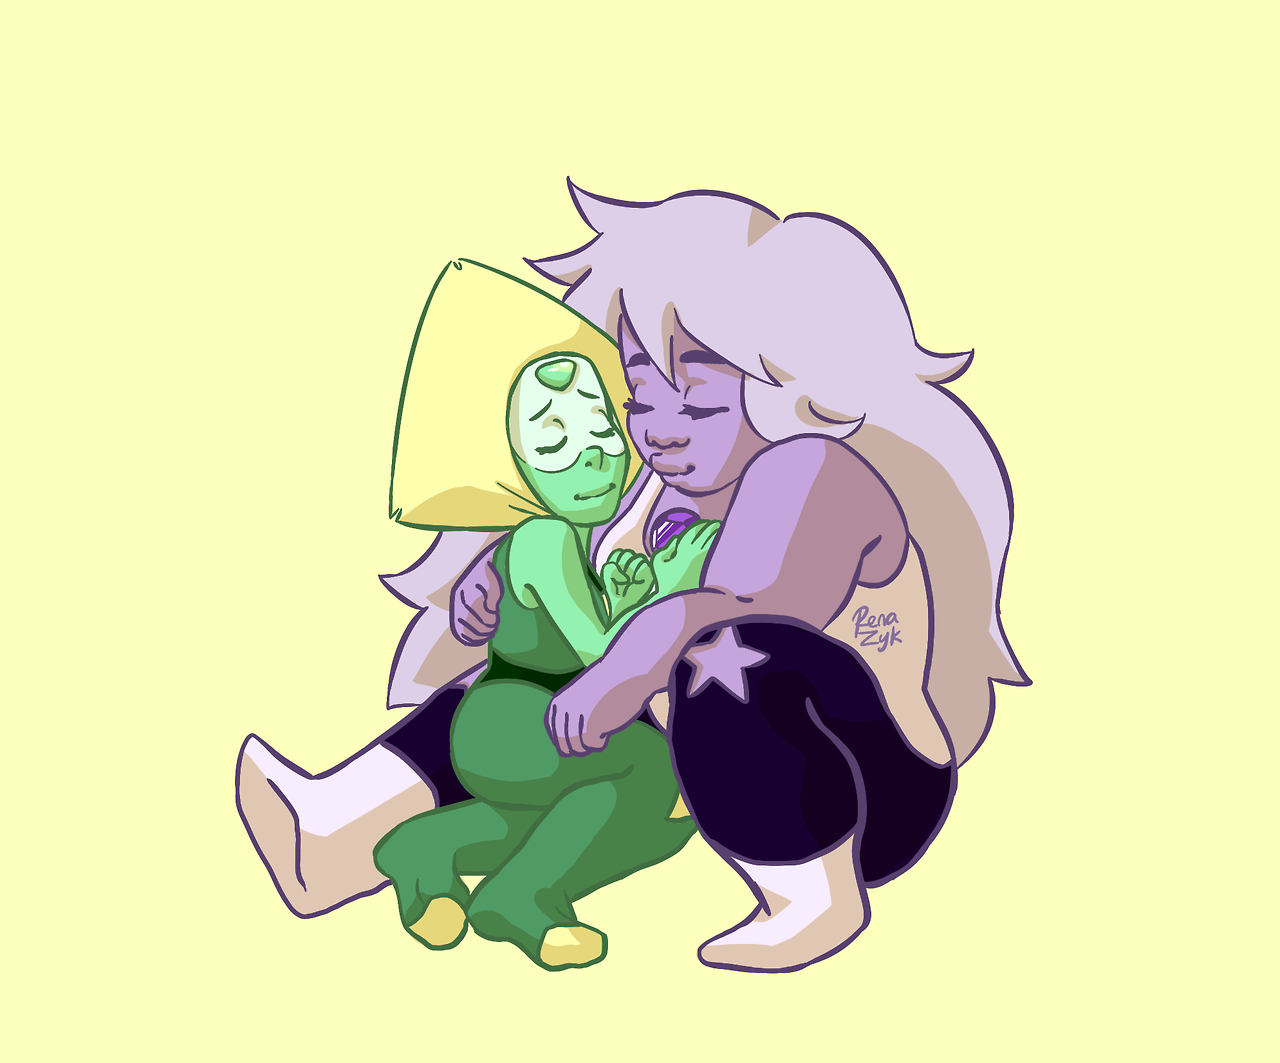 here's to peridot getting the love and attention she deserves